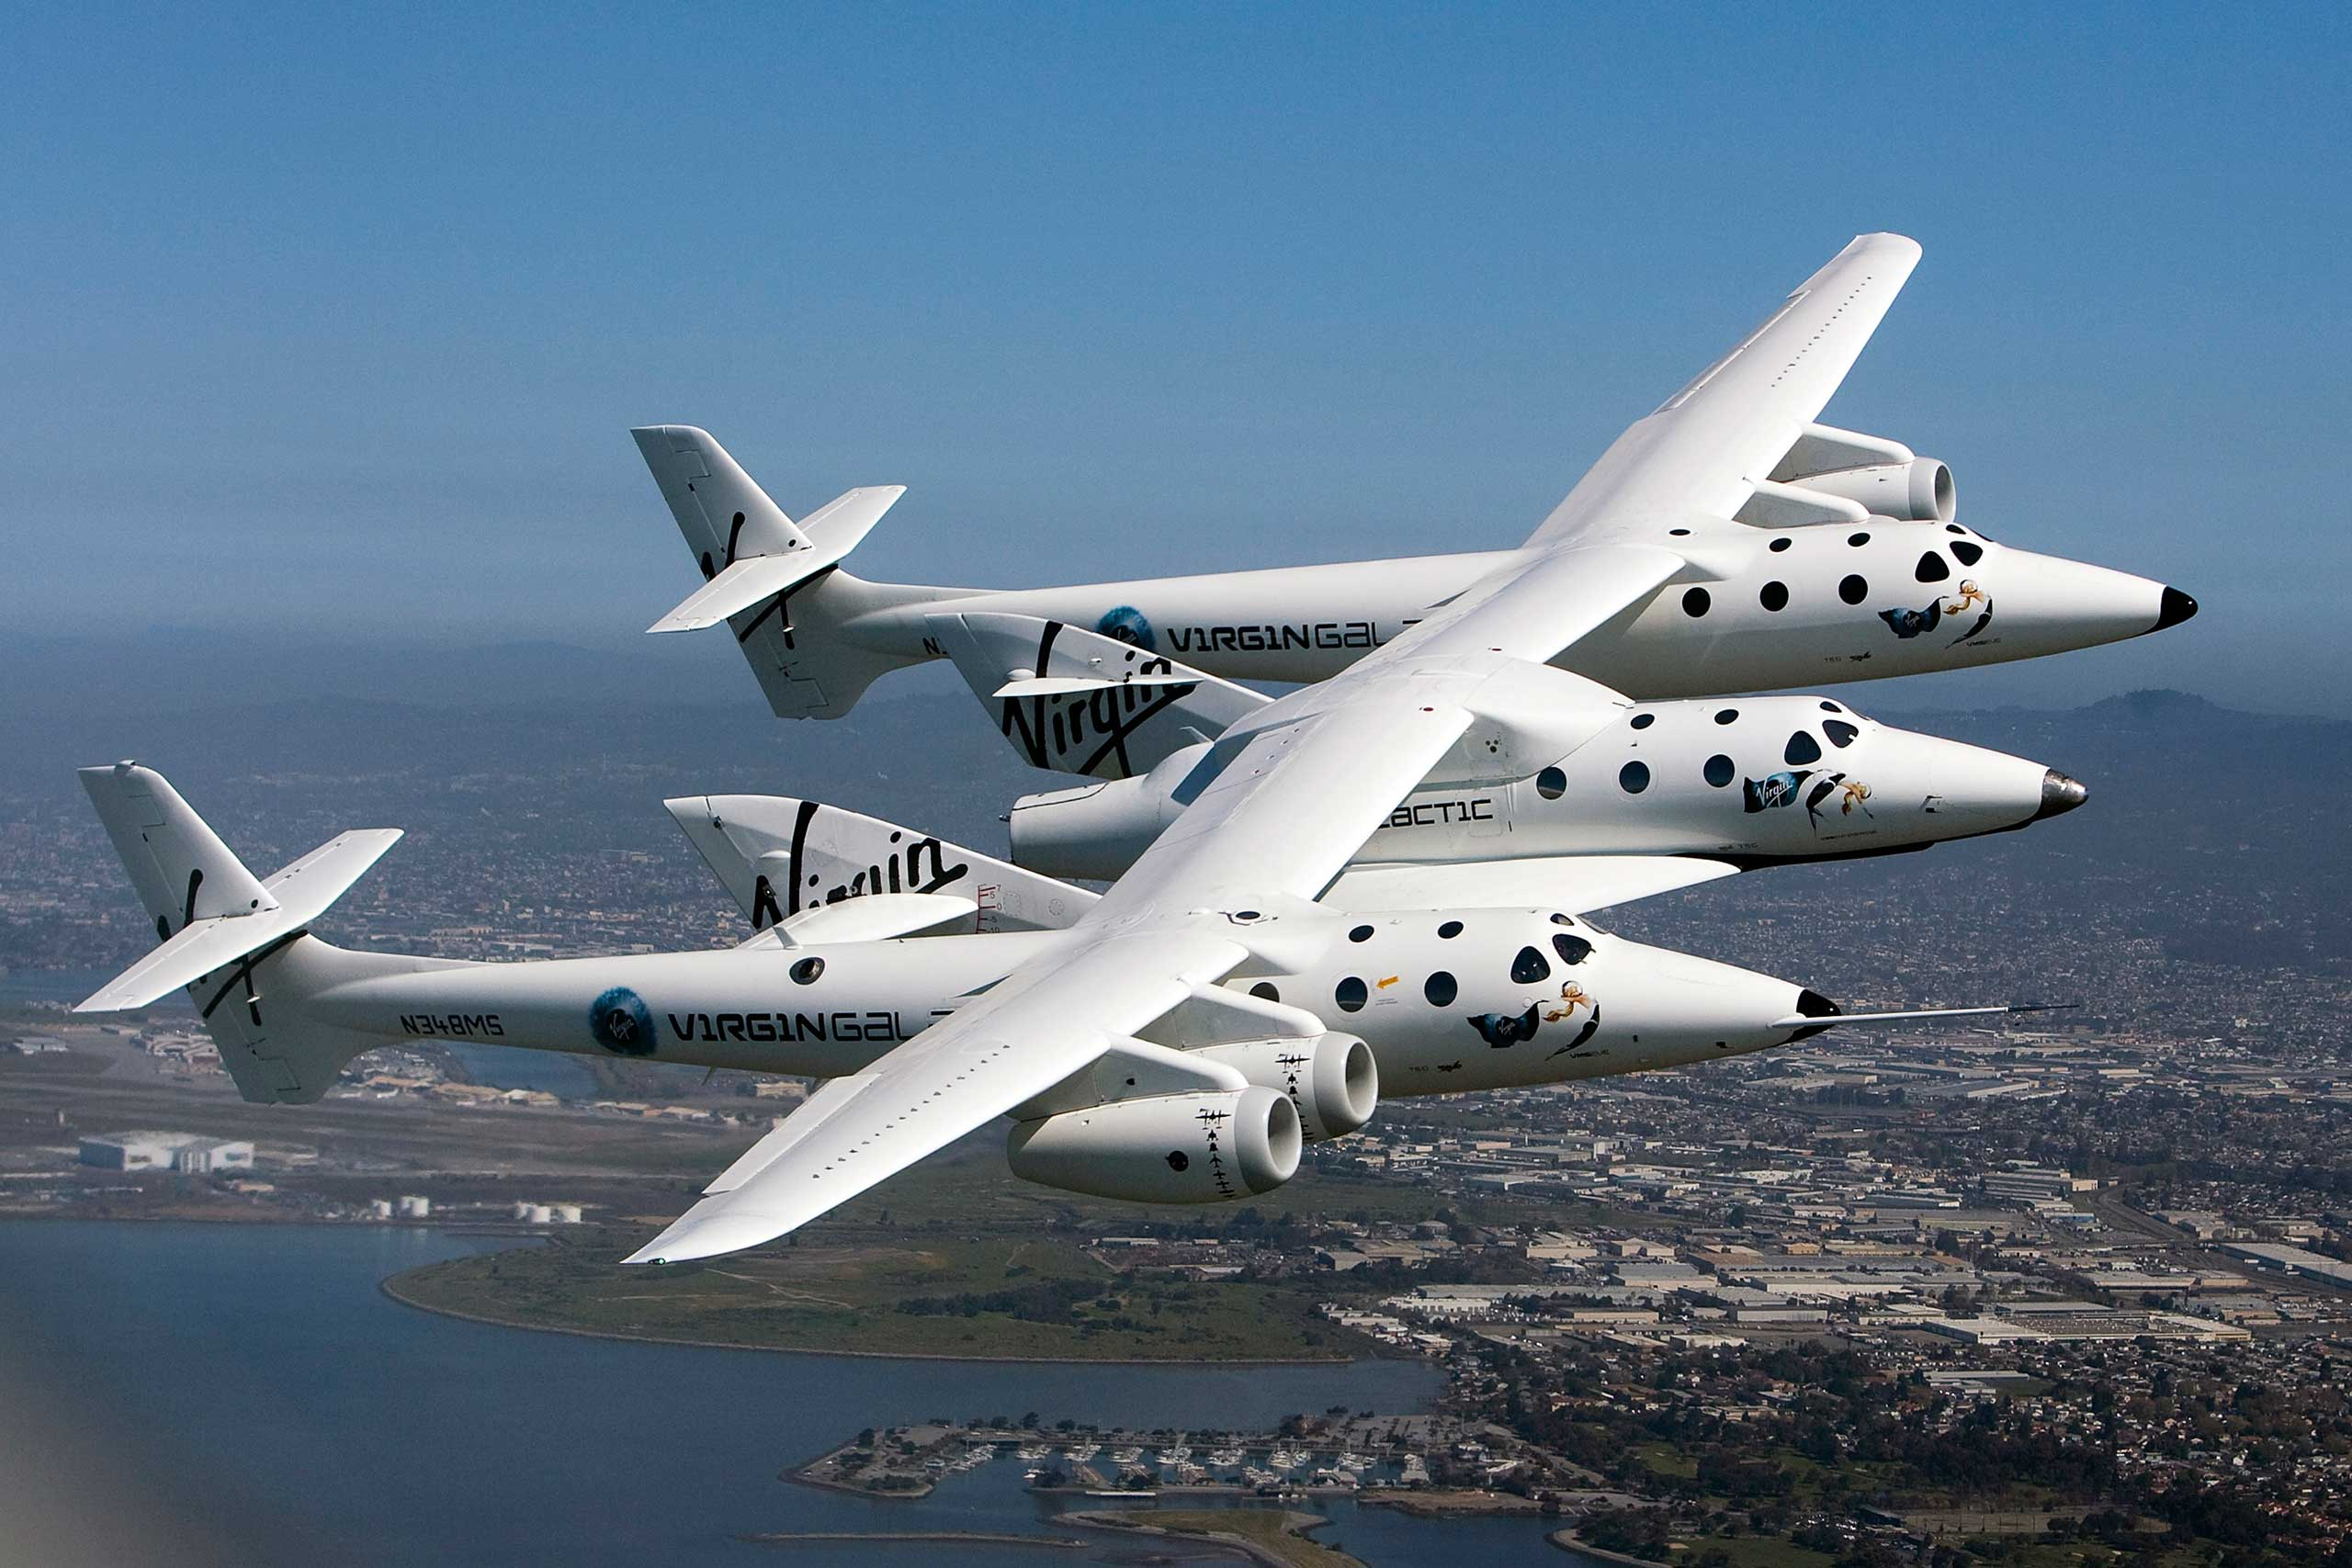 <strong>Richard Branson</strong>                                   Founder of Virgin Group, comprised of more than 400 companies, Branson has invested heavily in spaceship tourism with the SpaceShipTwo vehicle  .